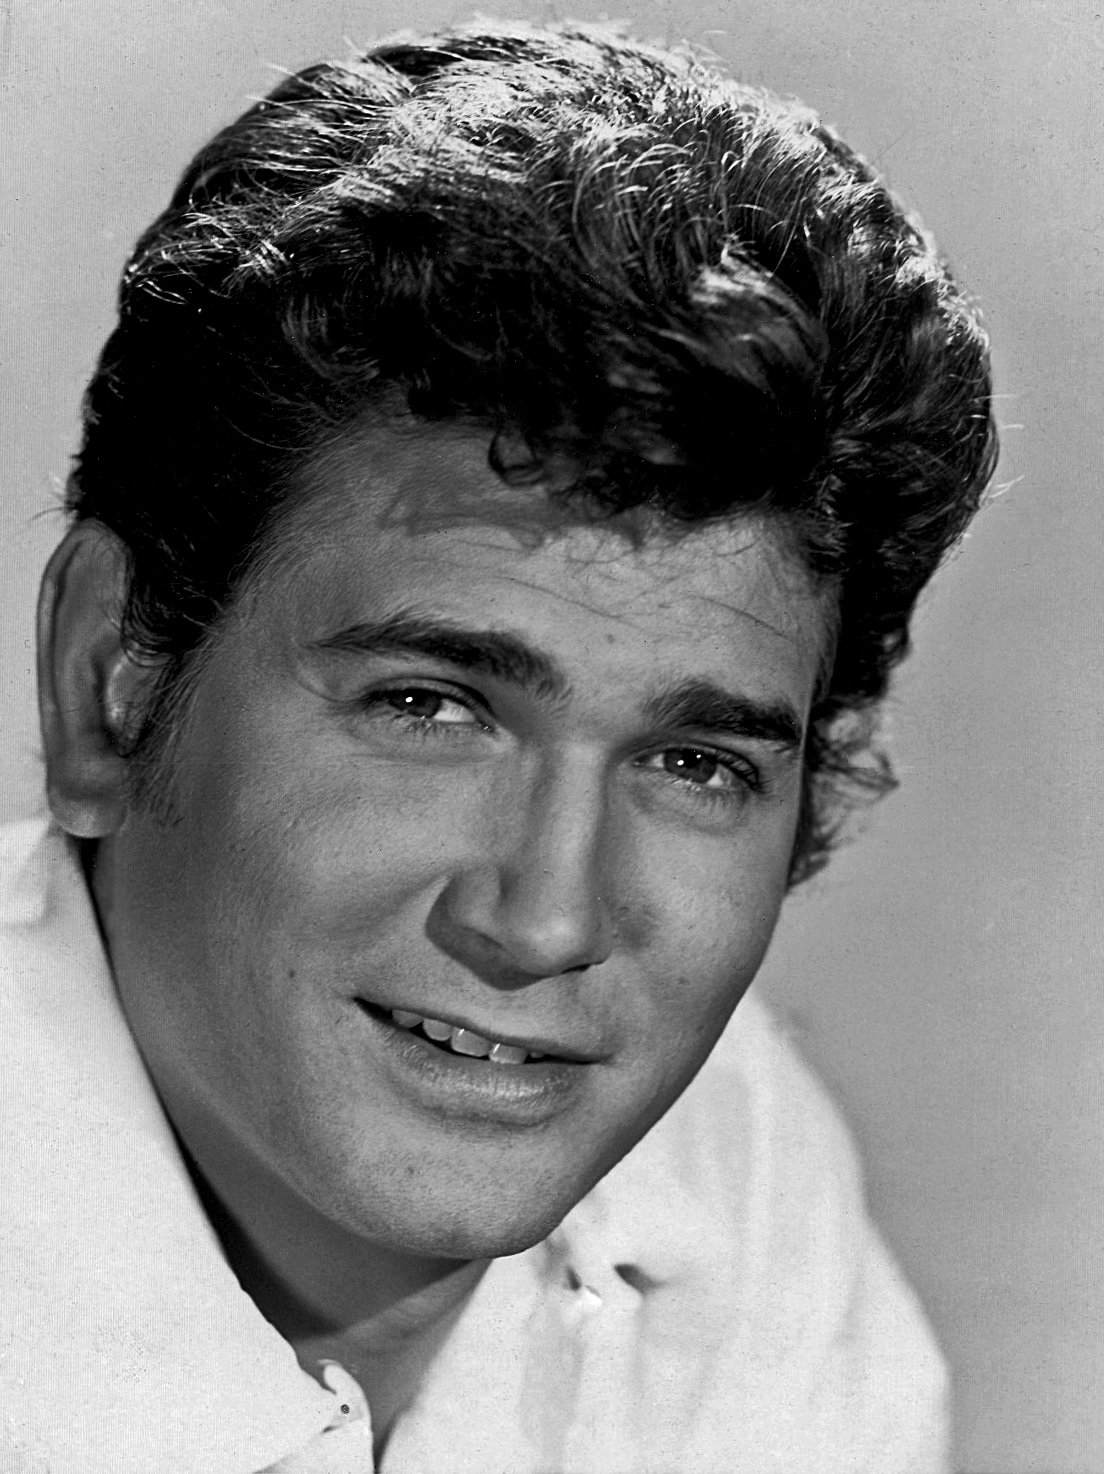 The Show Skyrocketed Michael Landon's Success